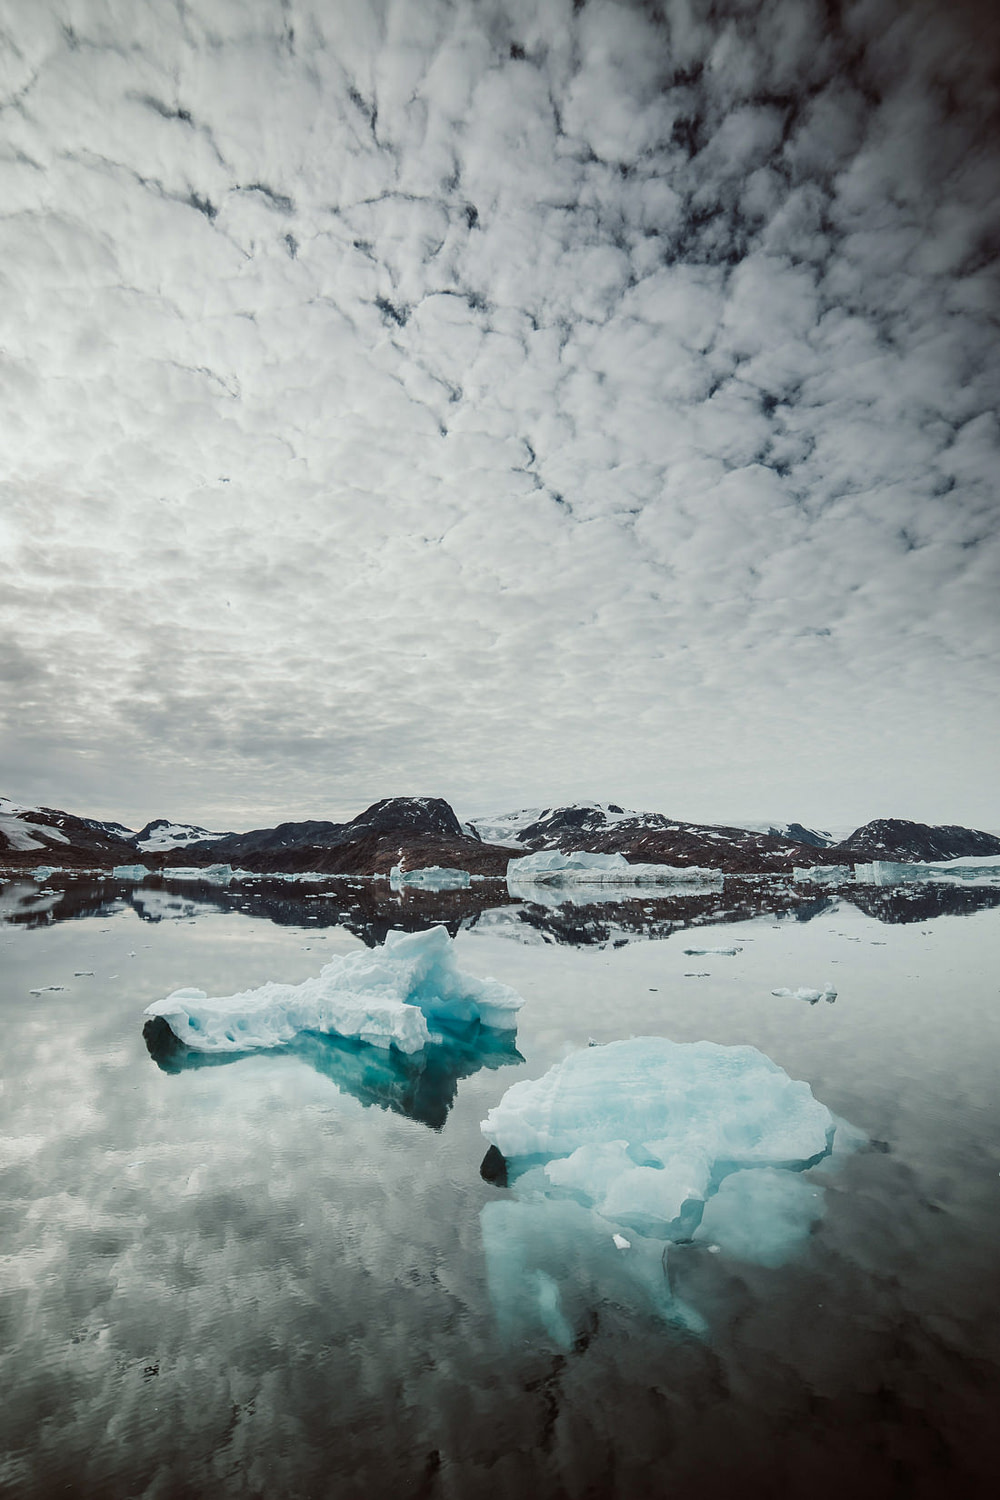 048 greenland arctic sailing expedition - Segel Expedition in Ost-Grönland 2/3